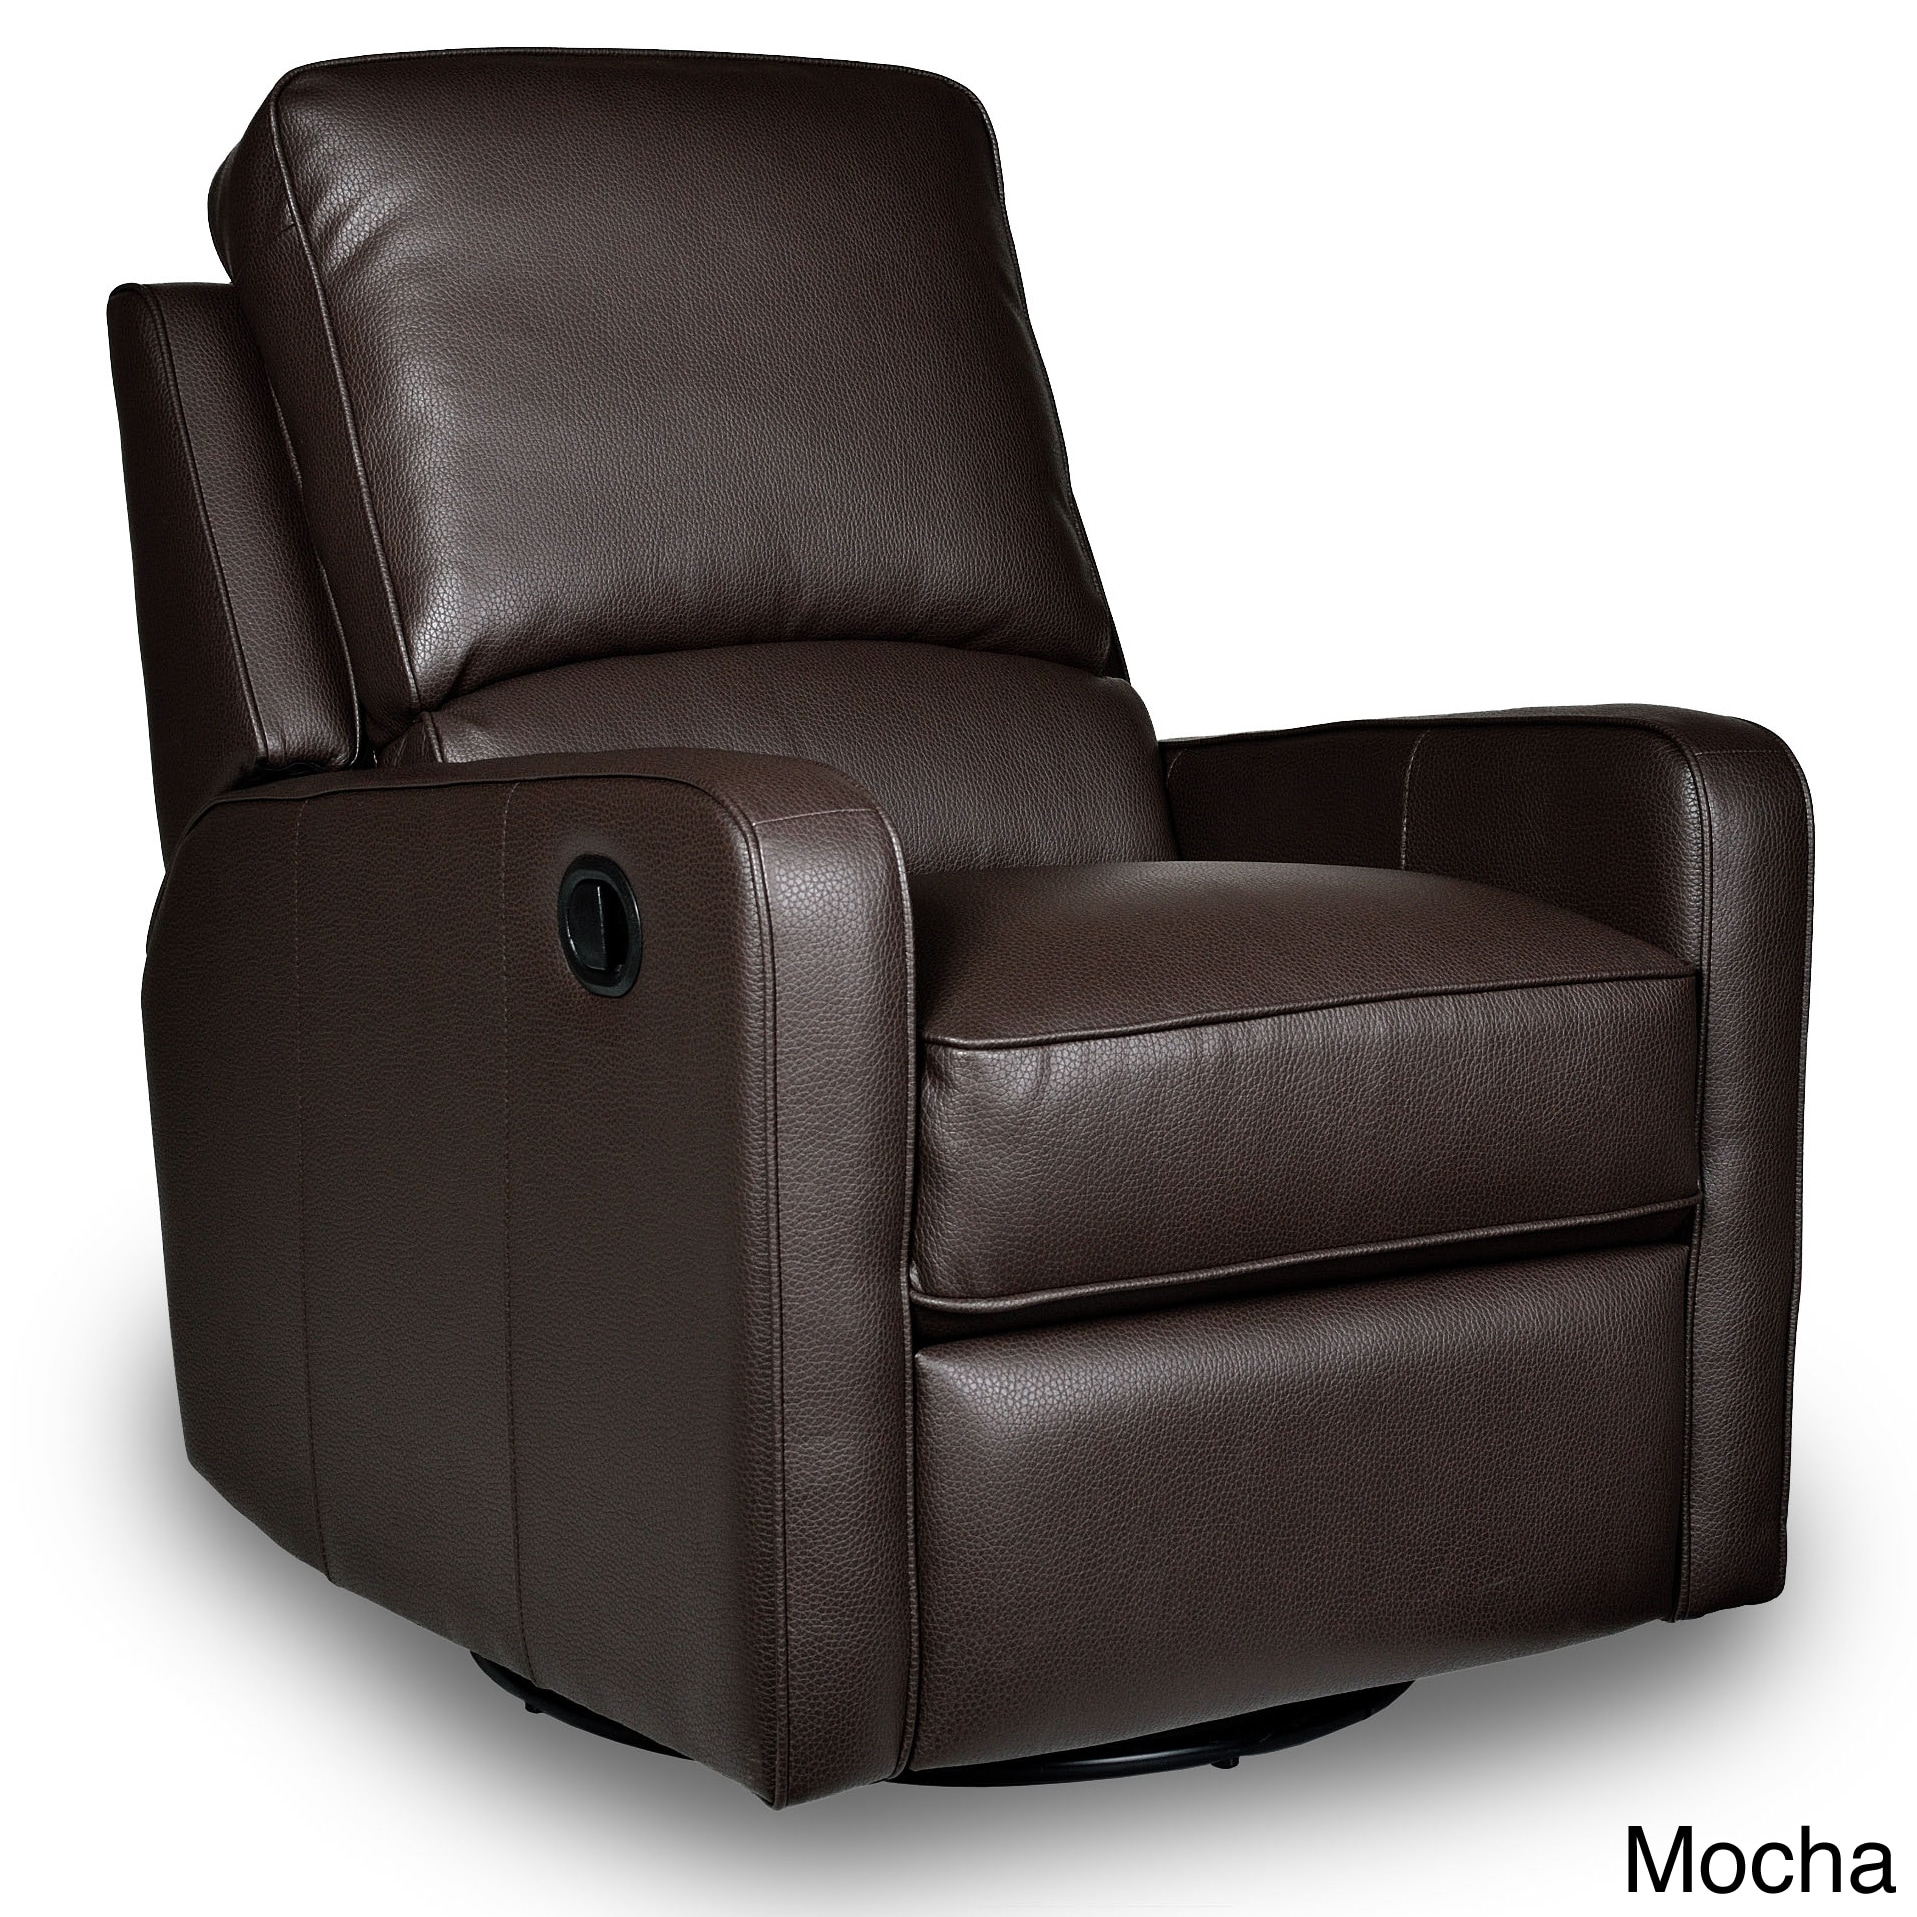 Swivel Recliner Leather Perth Glider Chair Furniture ...